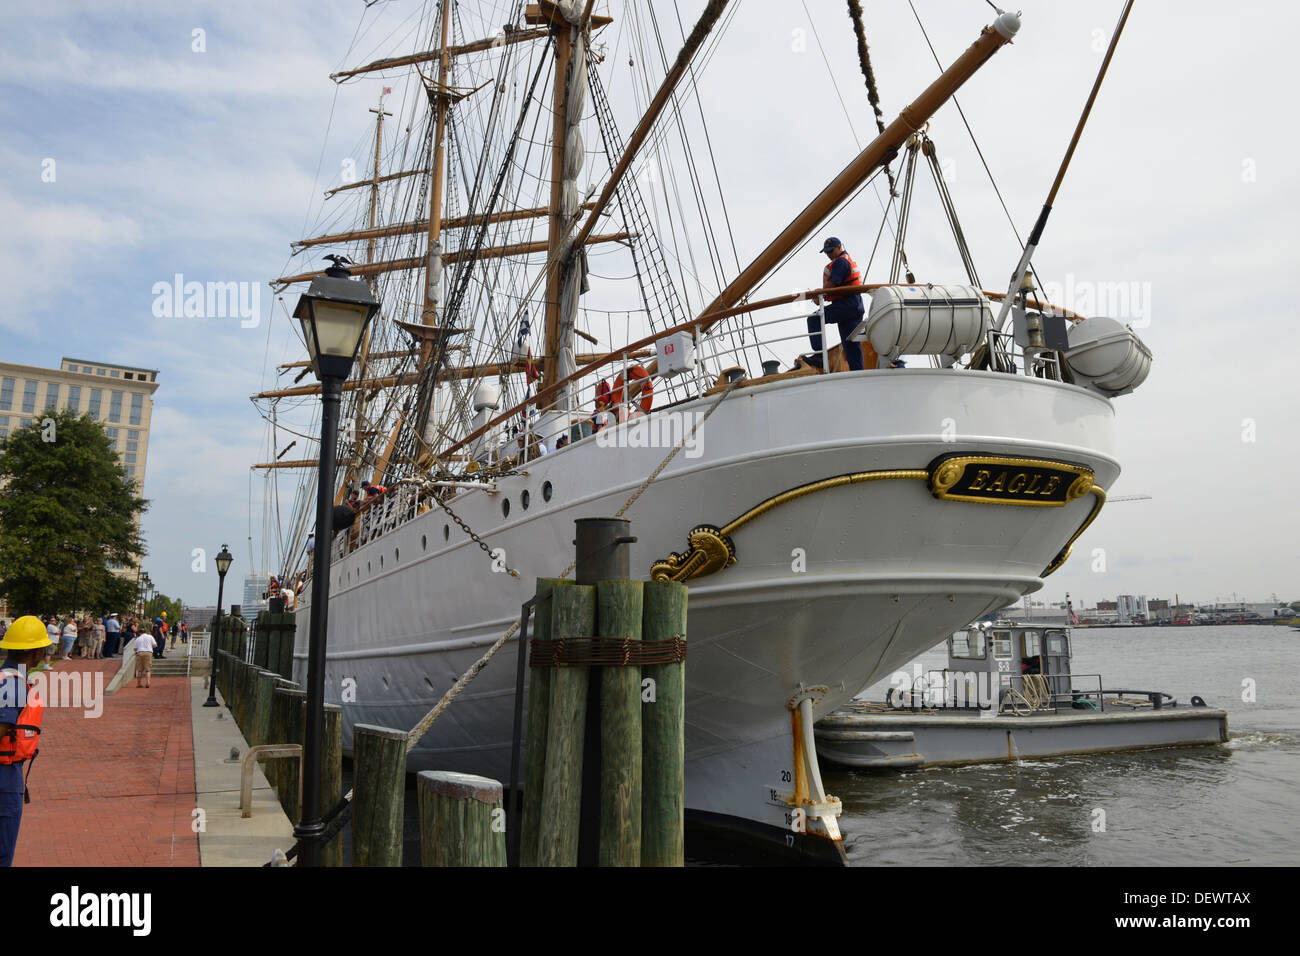 The Coast Guard Cutter Eagle is shown here moored up at the High Street Landing in downtown Portsmouth, Va., Friday, Sept. 13, 2013. - Stock Image